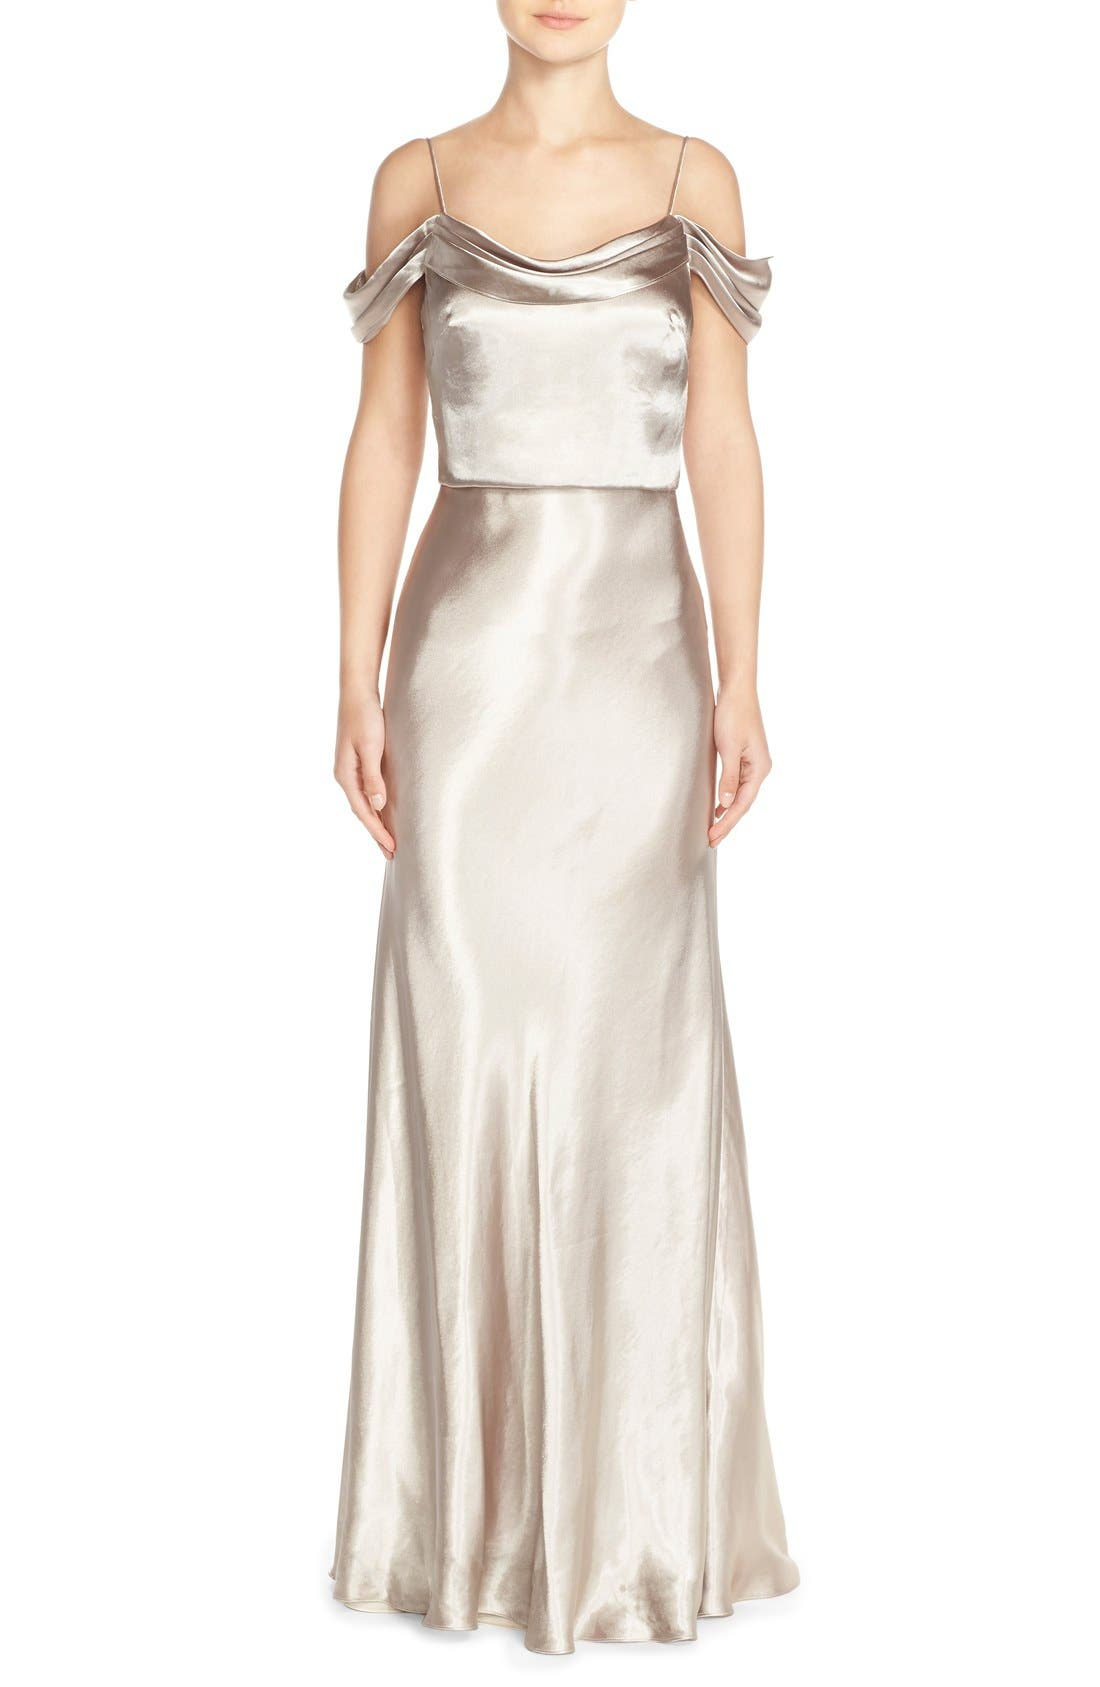 Alternate Image 1 Selected - Jenny Yoo 'Sabine' Draped Pleat Neck Charmeuse Gown